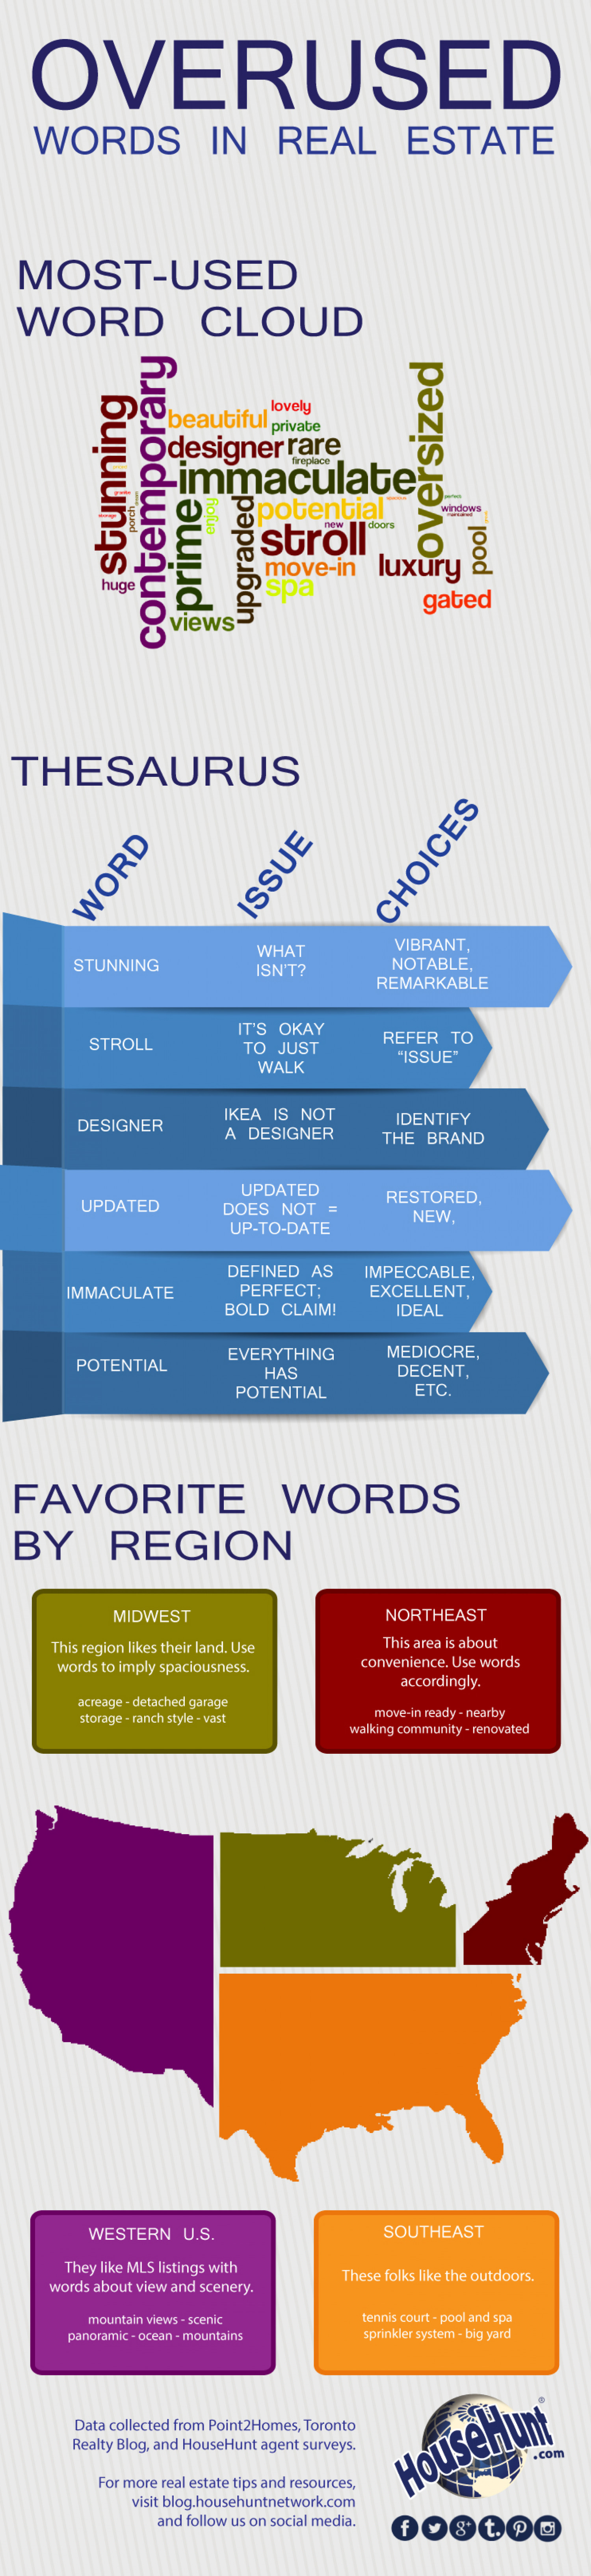 Overused Terms in Real Estate Infographic